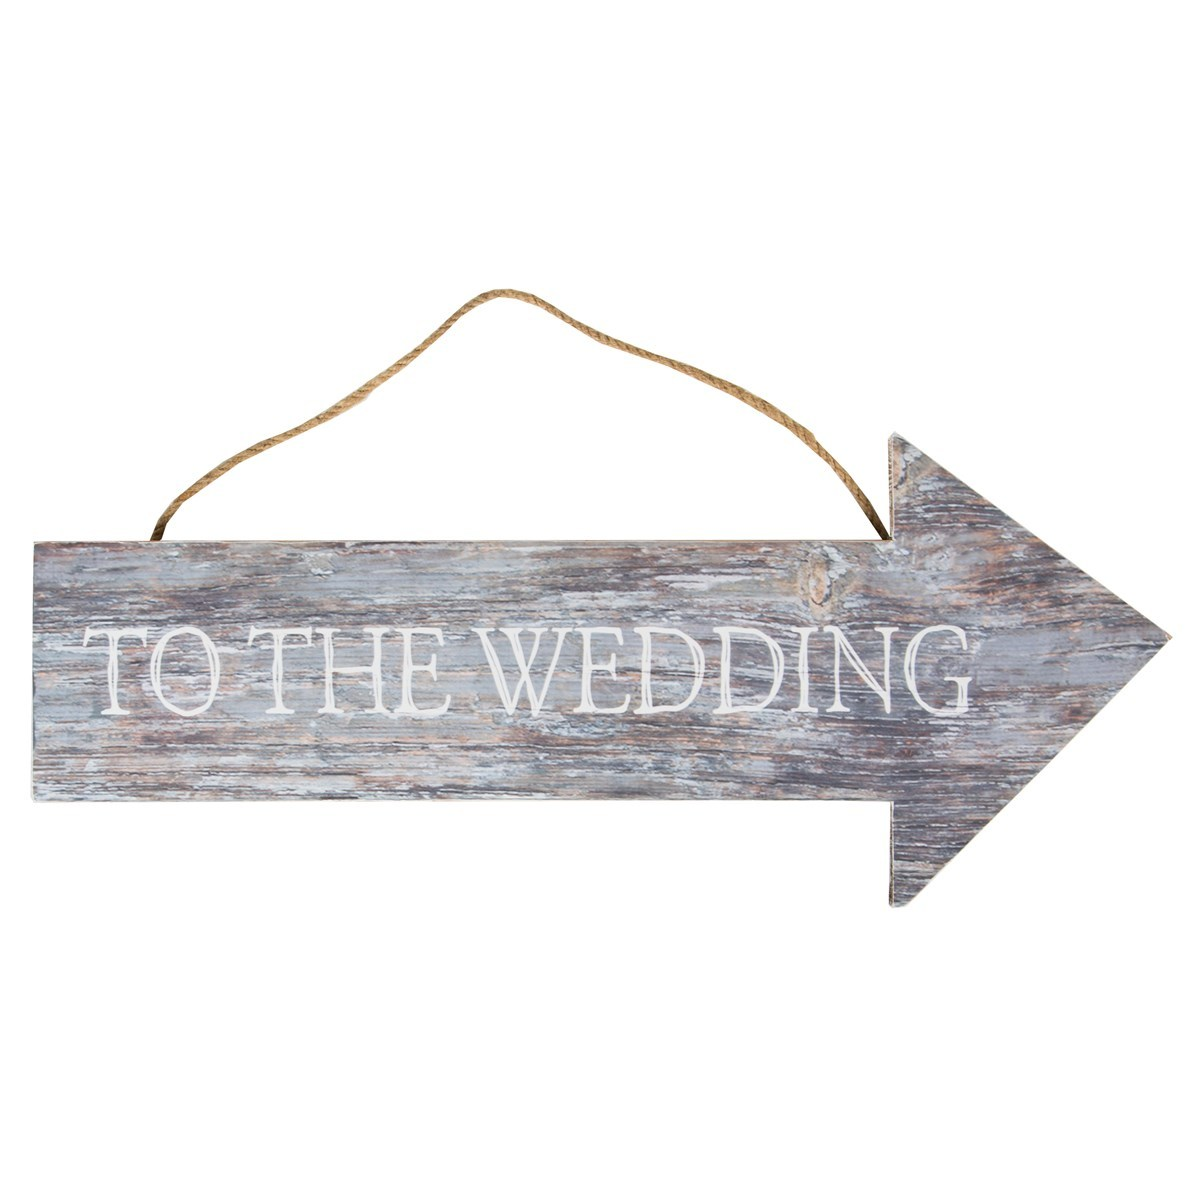 To The Wedding Coastal Chic Hanging Sign image